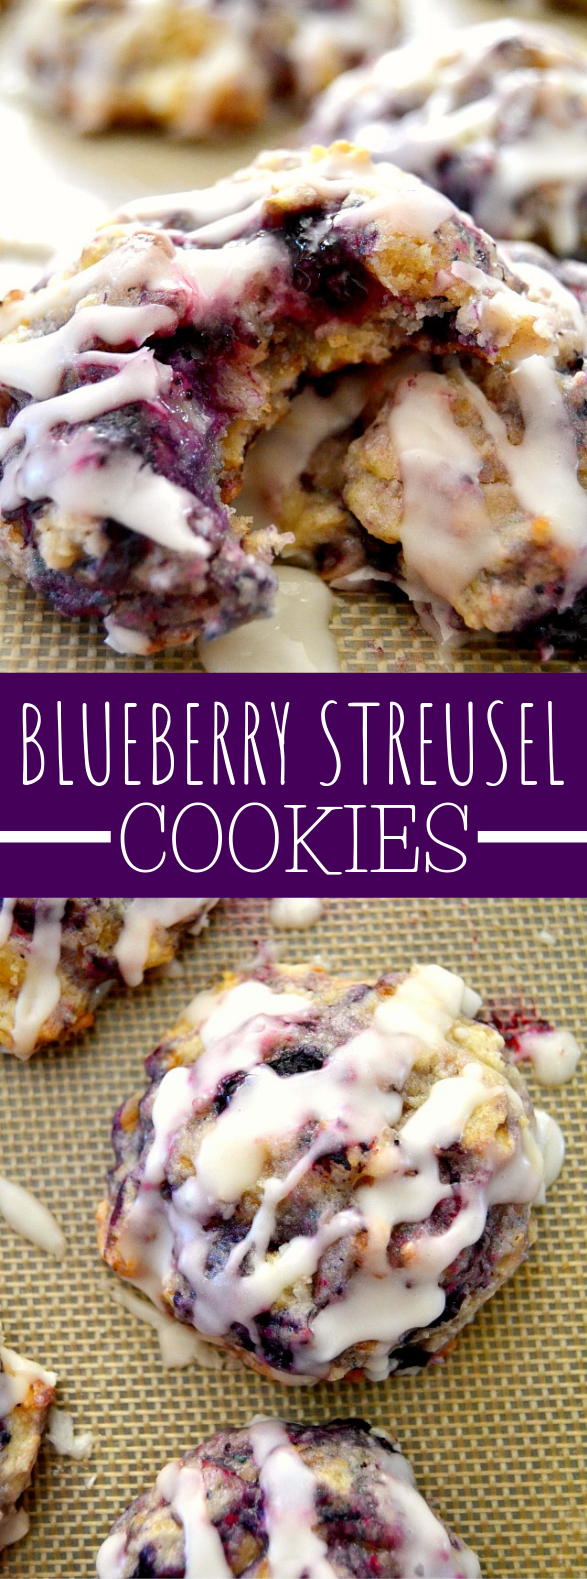 Muffin Mix Blueberry Streusel Cookies #desserts #healthydessert